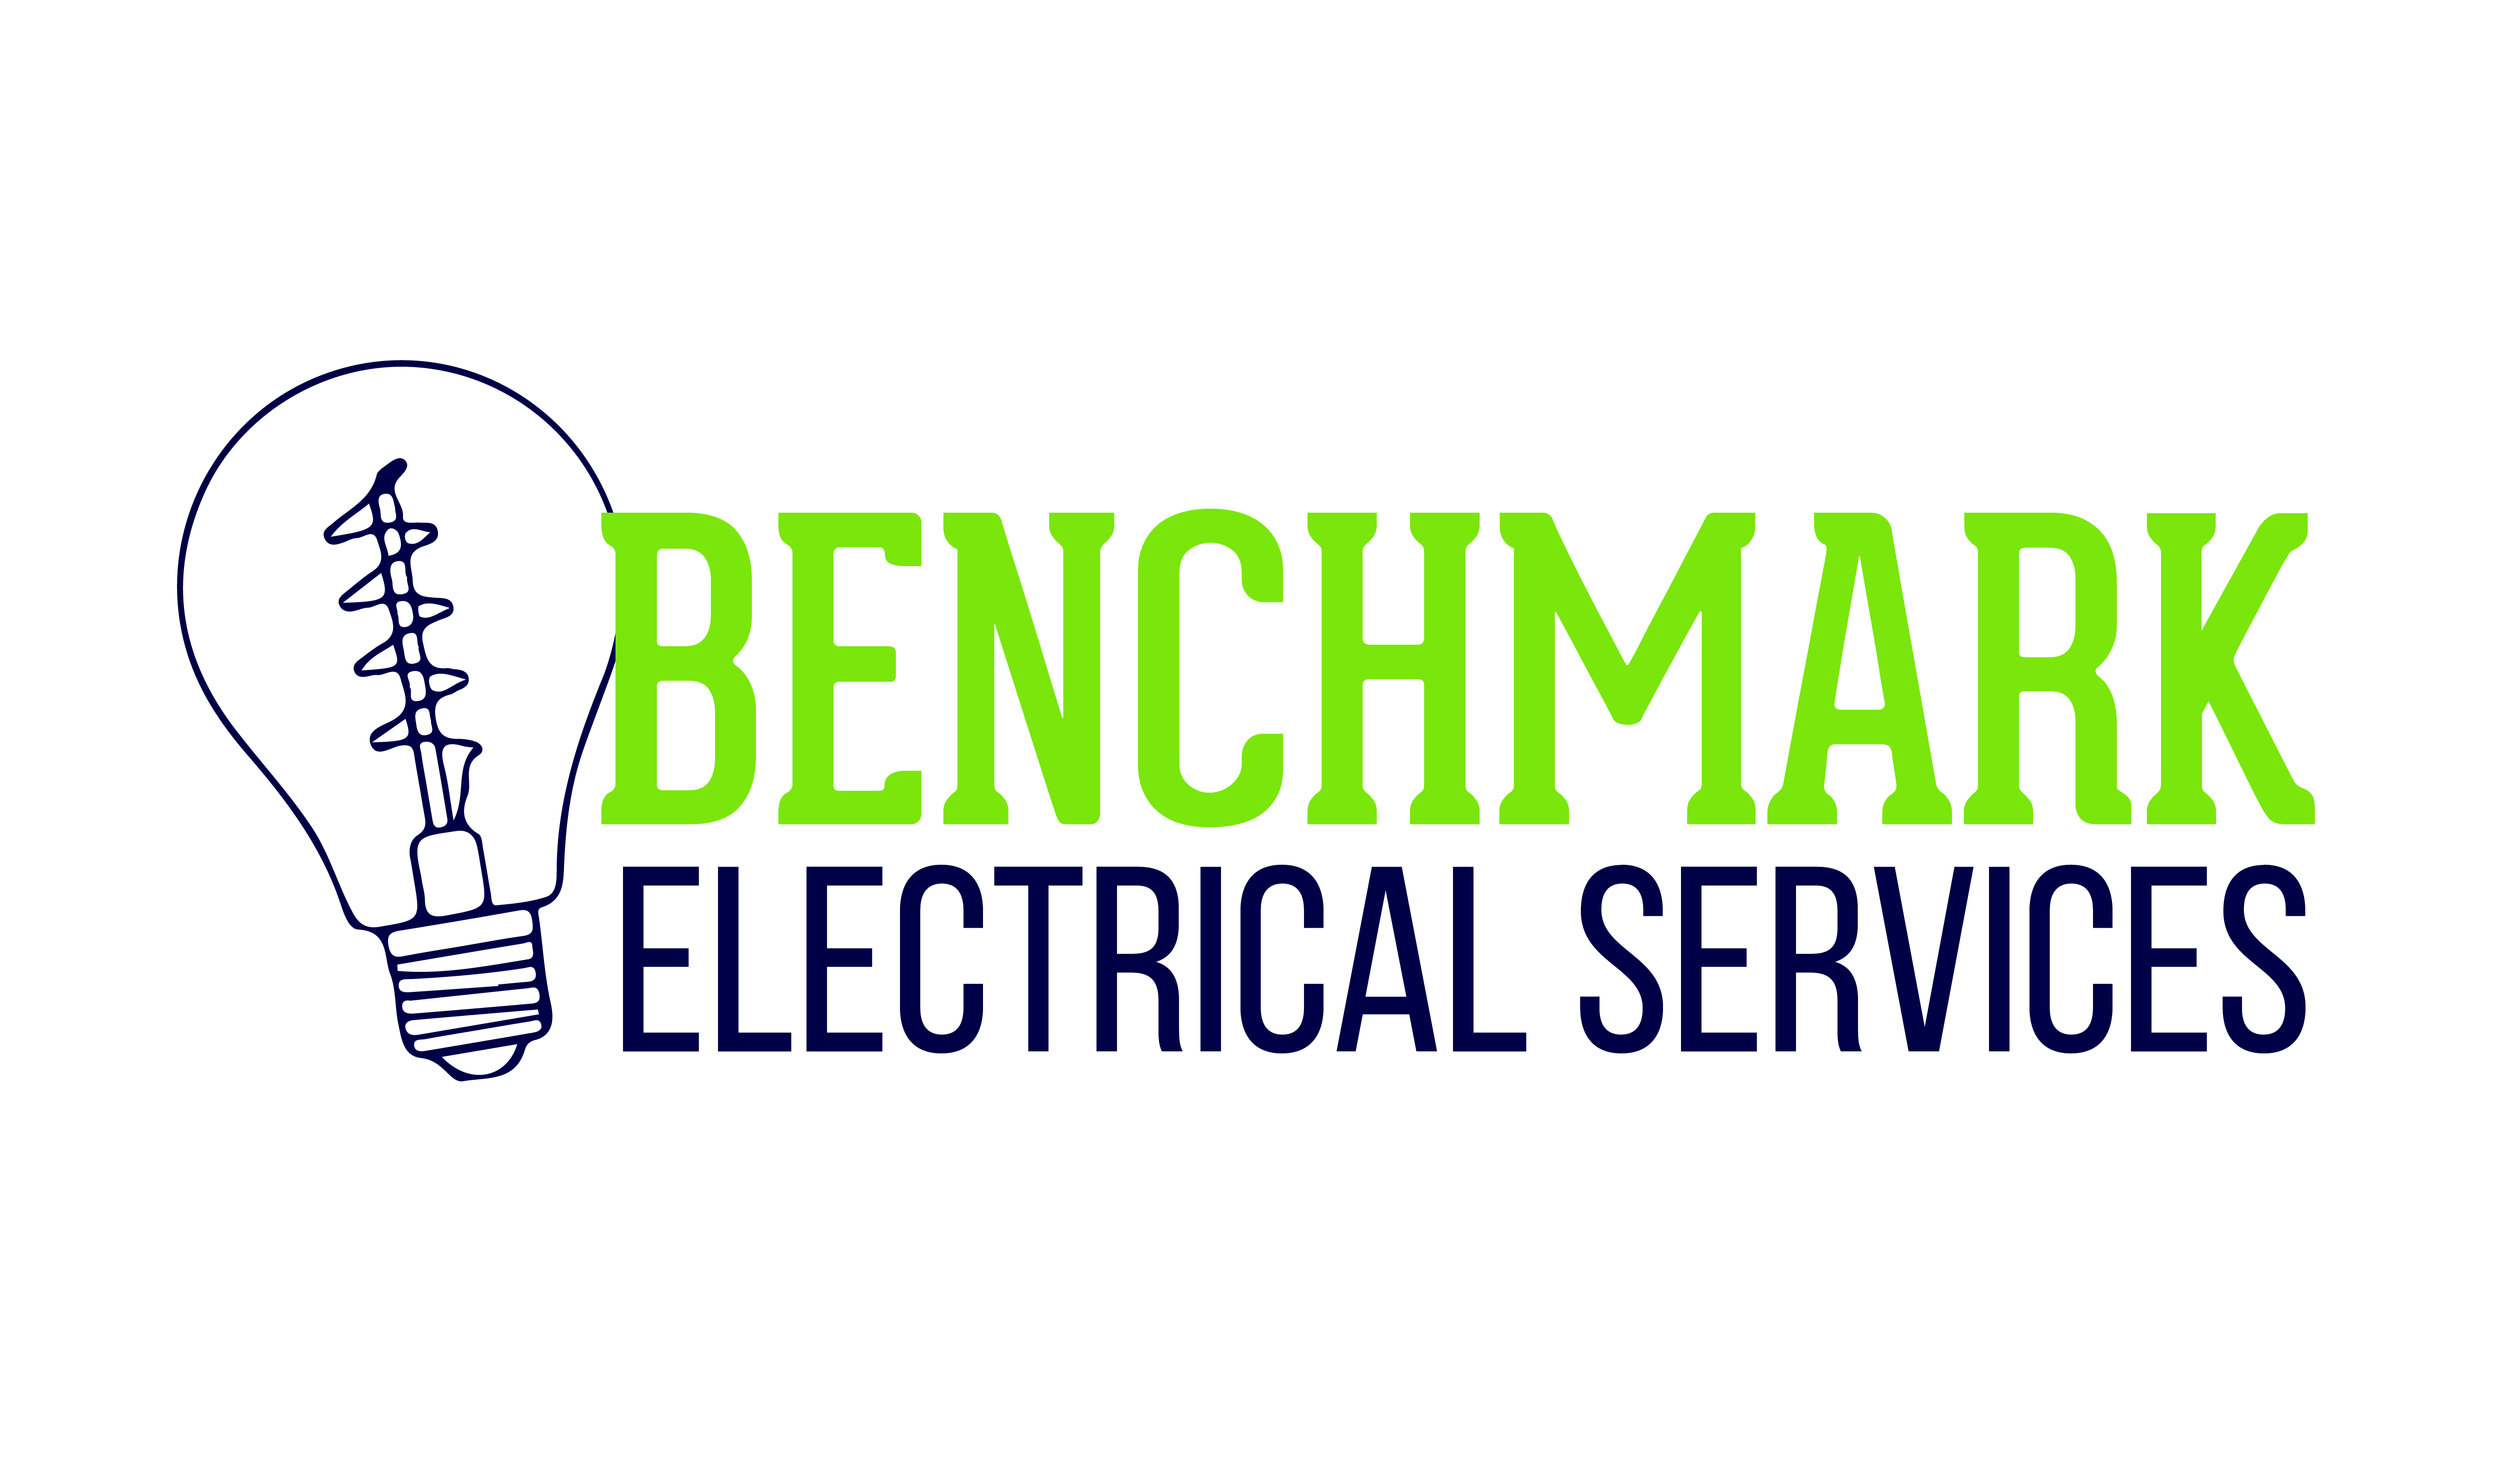 The official Benchmark Electrical Services Logo!